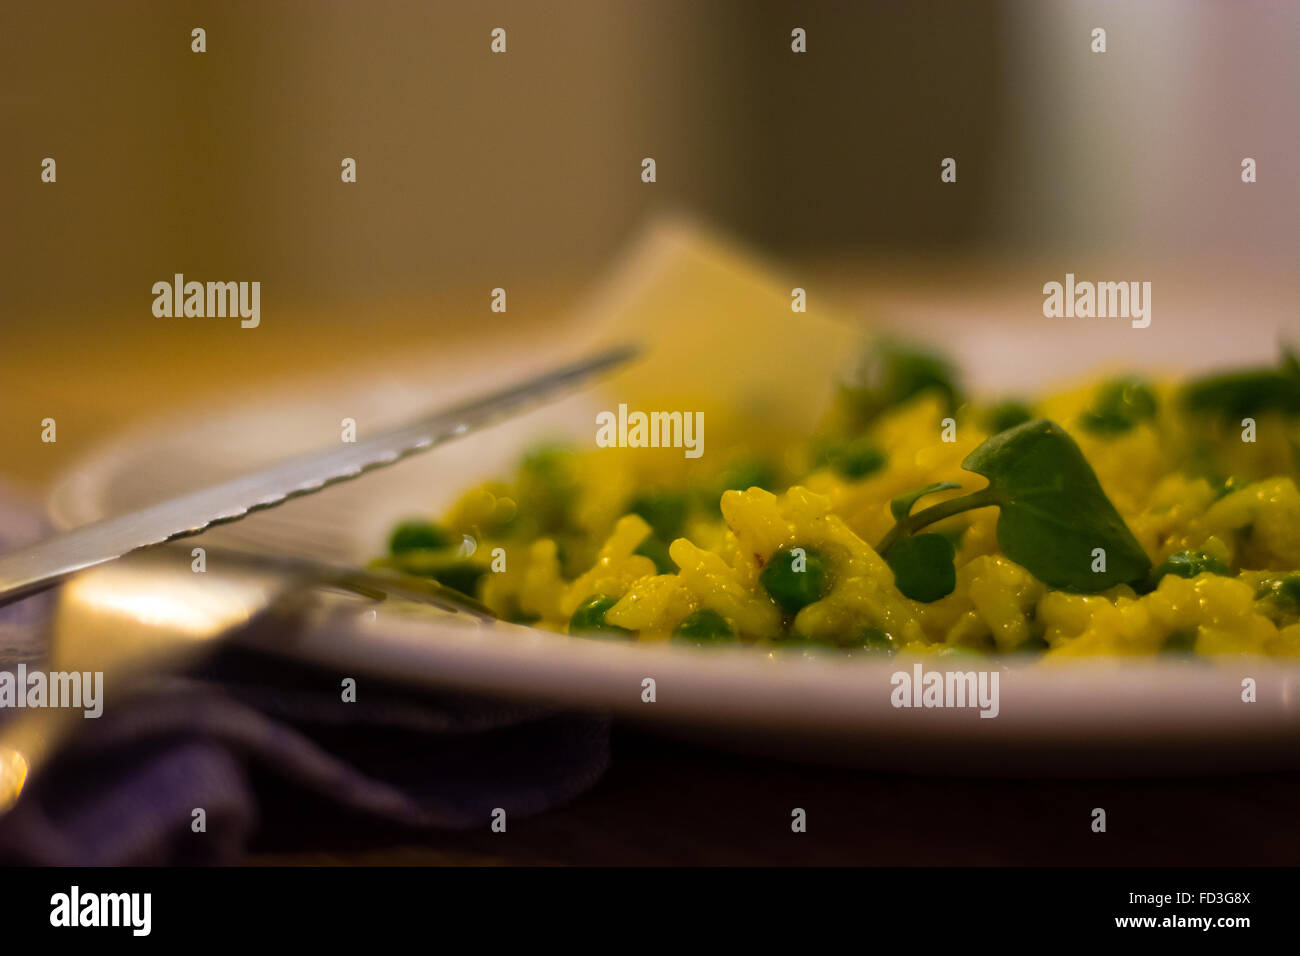 Leek, garden pea and saffron risotto half plate with knife. French restaurant prepared cuisine with bright yellow - Stock Image